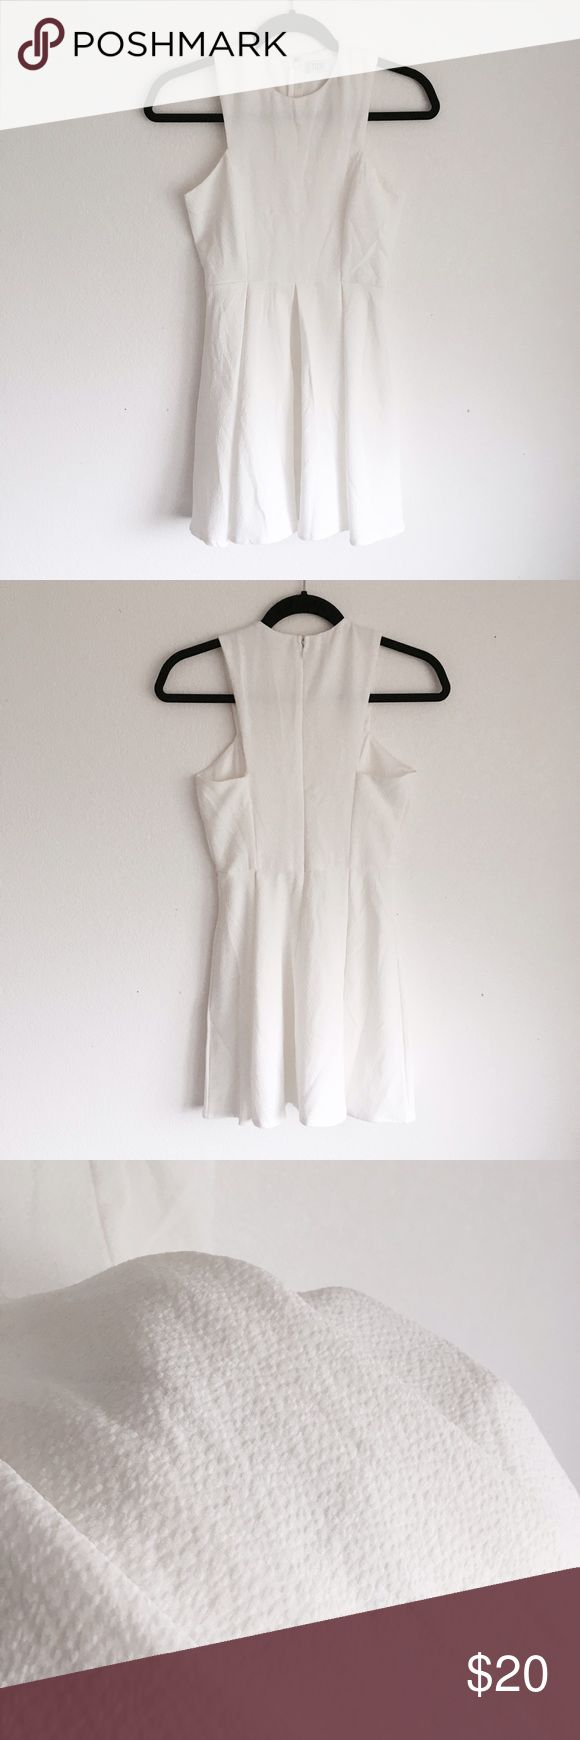 Tobi White Skater Dress Tobi White Skater Dress. Size xsmall. In good condition, no flaws. Tobi Dresses Mini